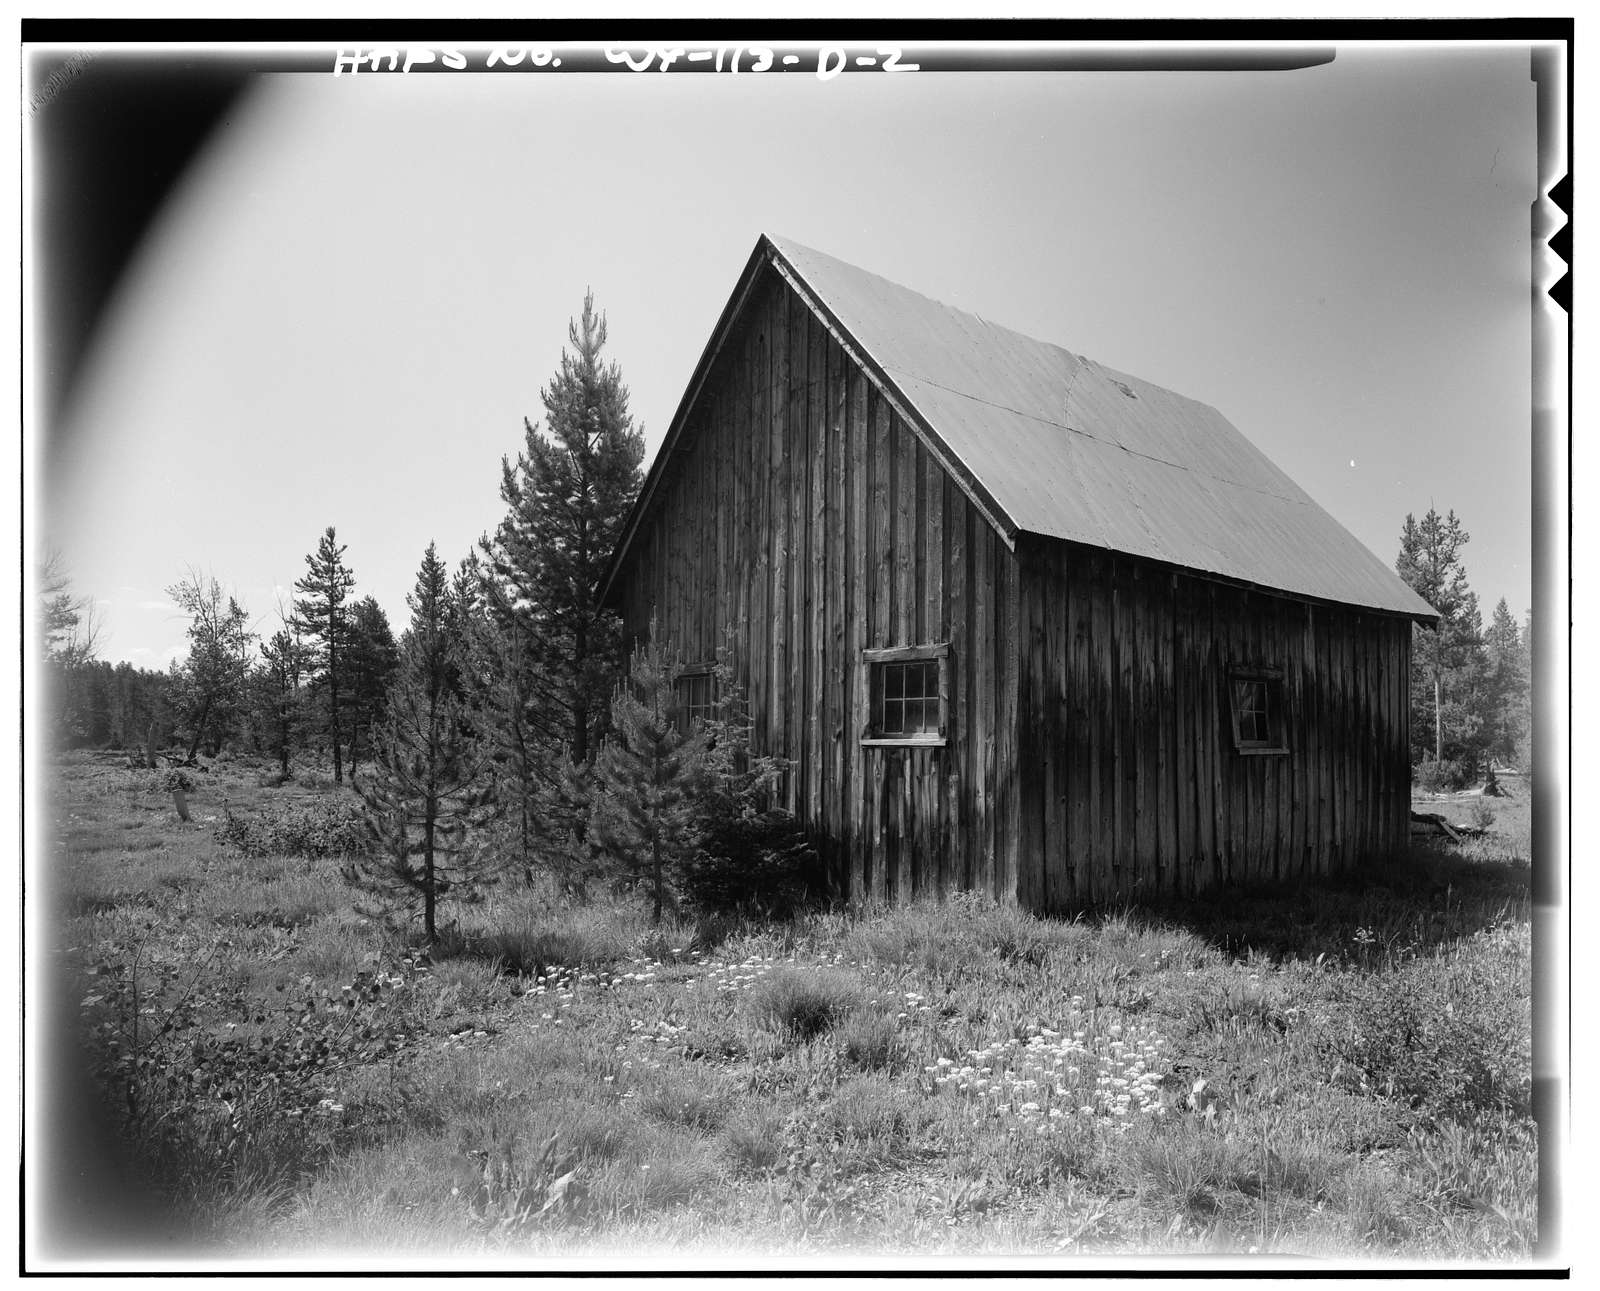 Geraldine Lucas Homestead, Garage, West bank Cottonwood Creek, 2.5 miles downstream from Jenny Lake, Moose, Teton County, WY